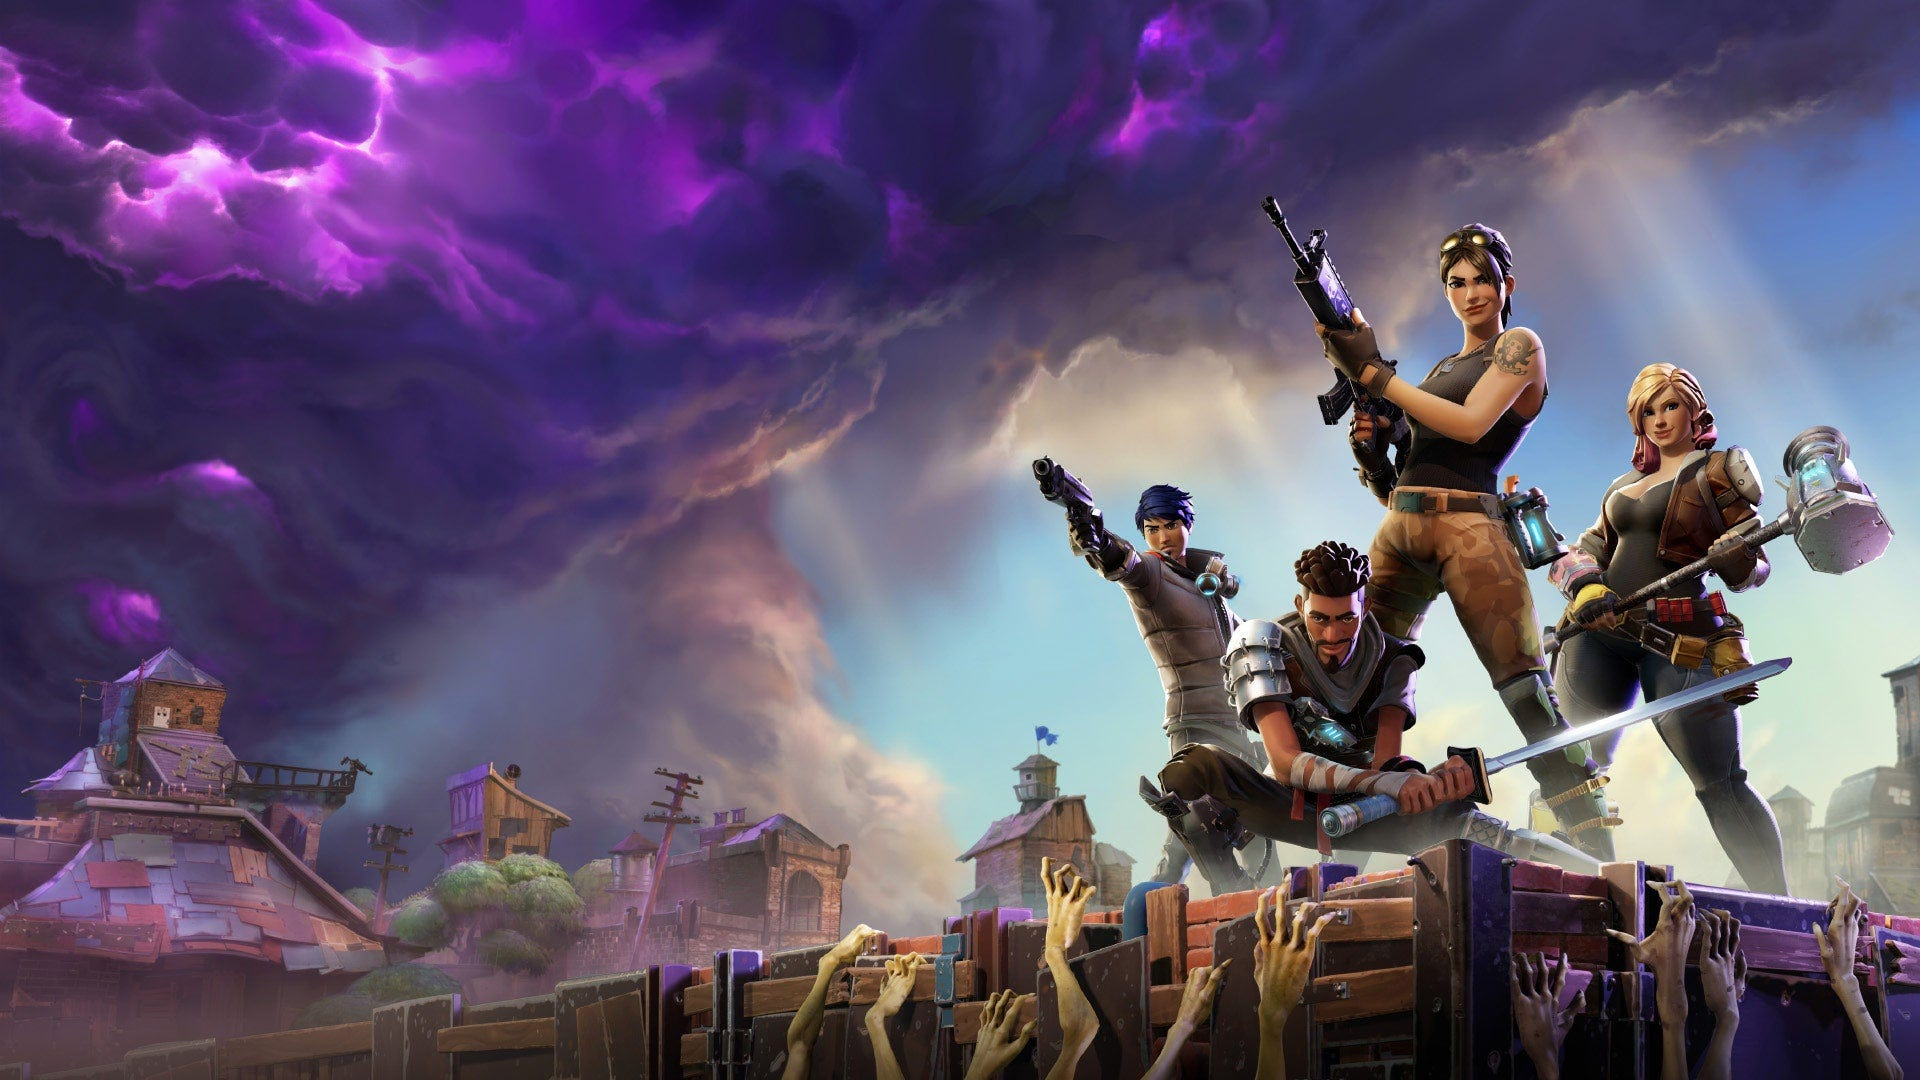 fortnite crew video game subscription service costs 11 99 a month fortnite crew video game subscription